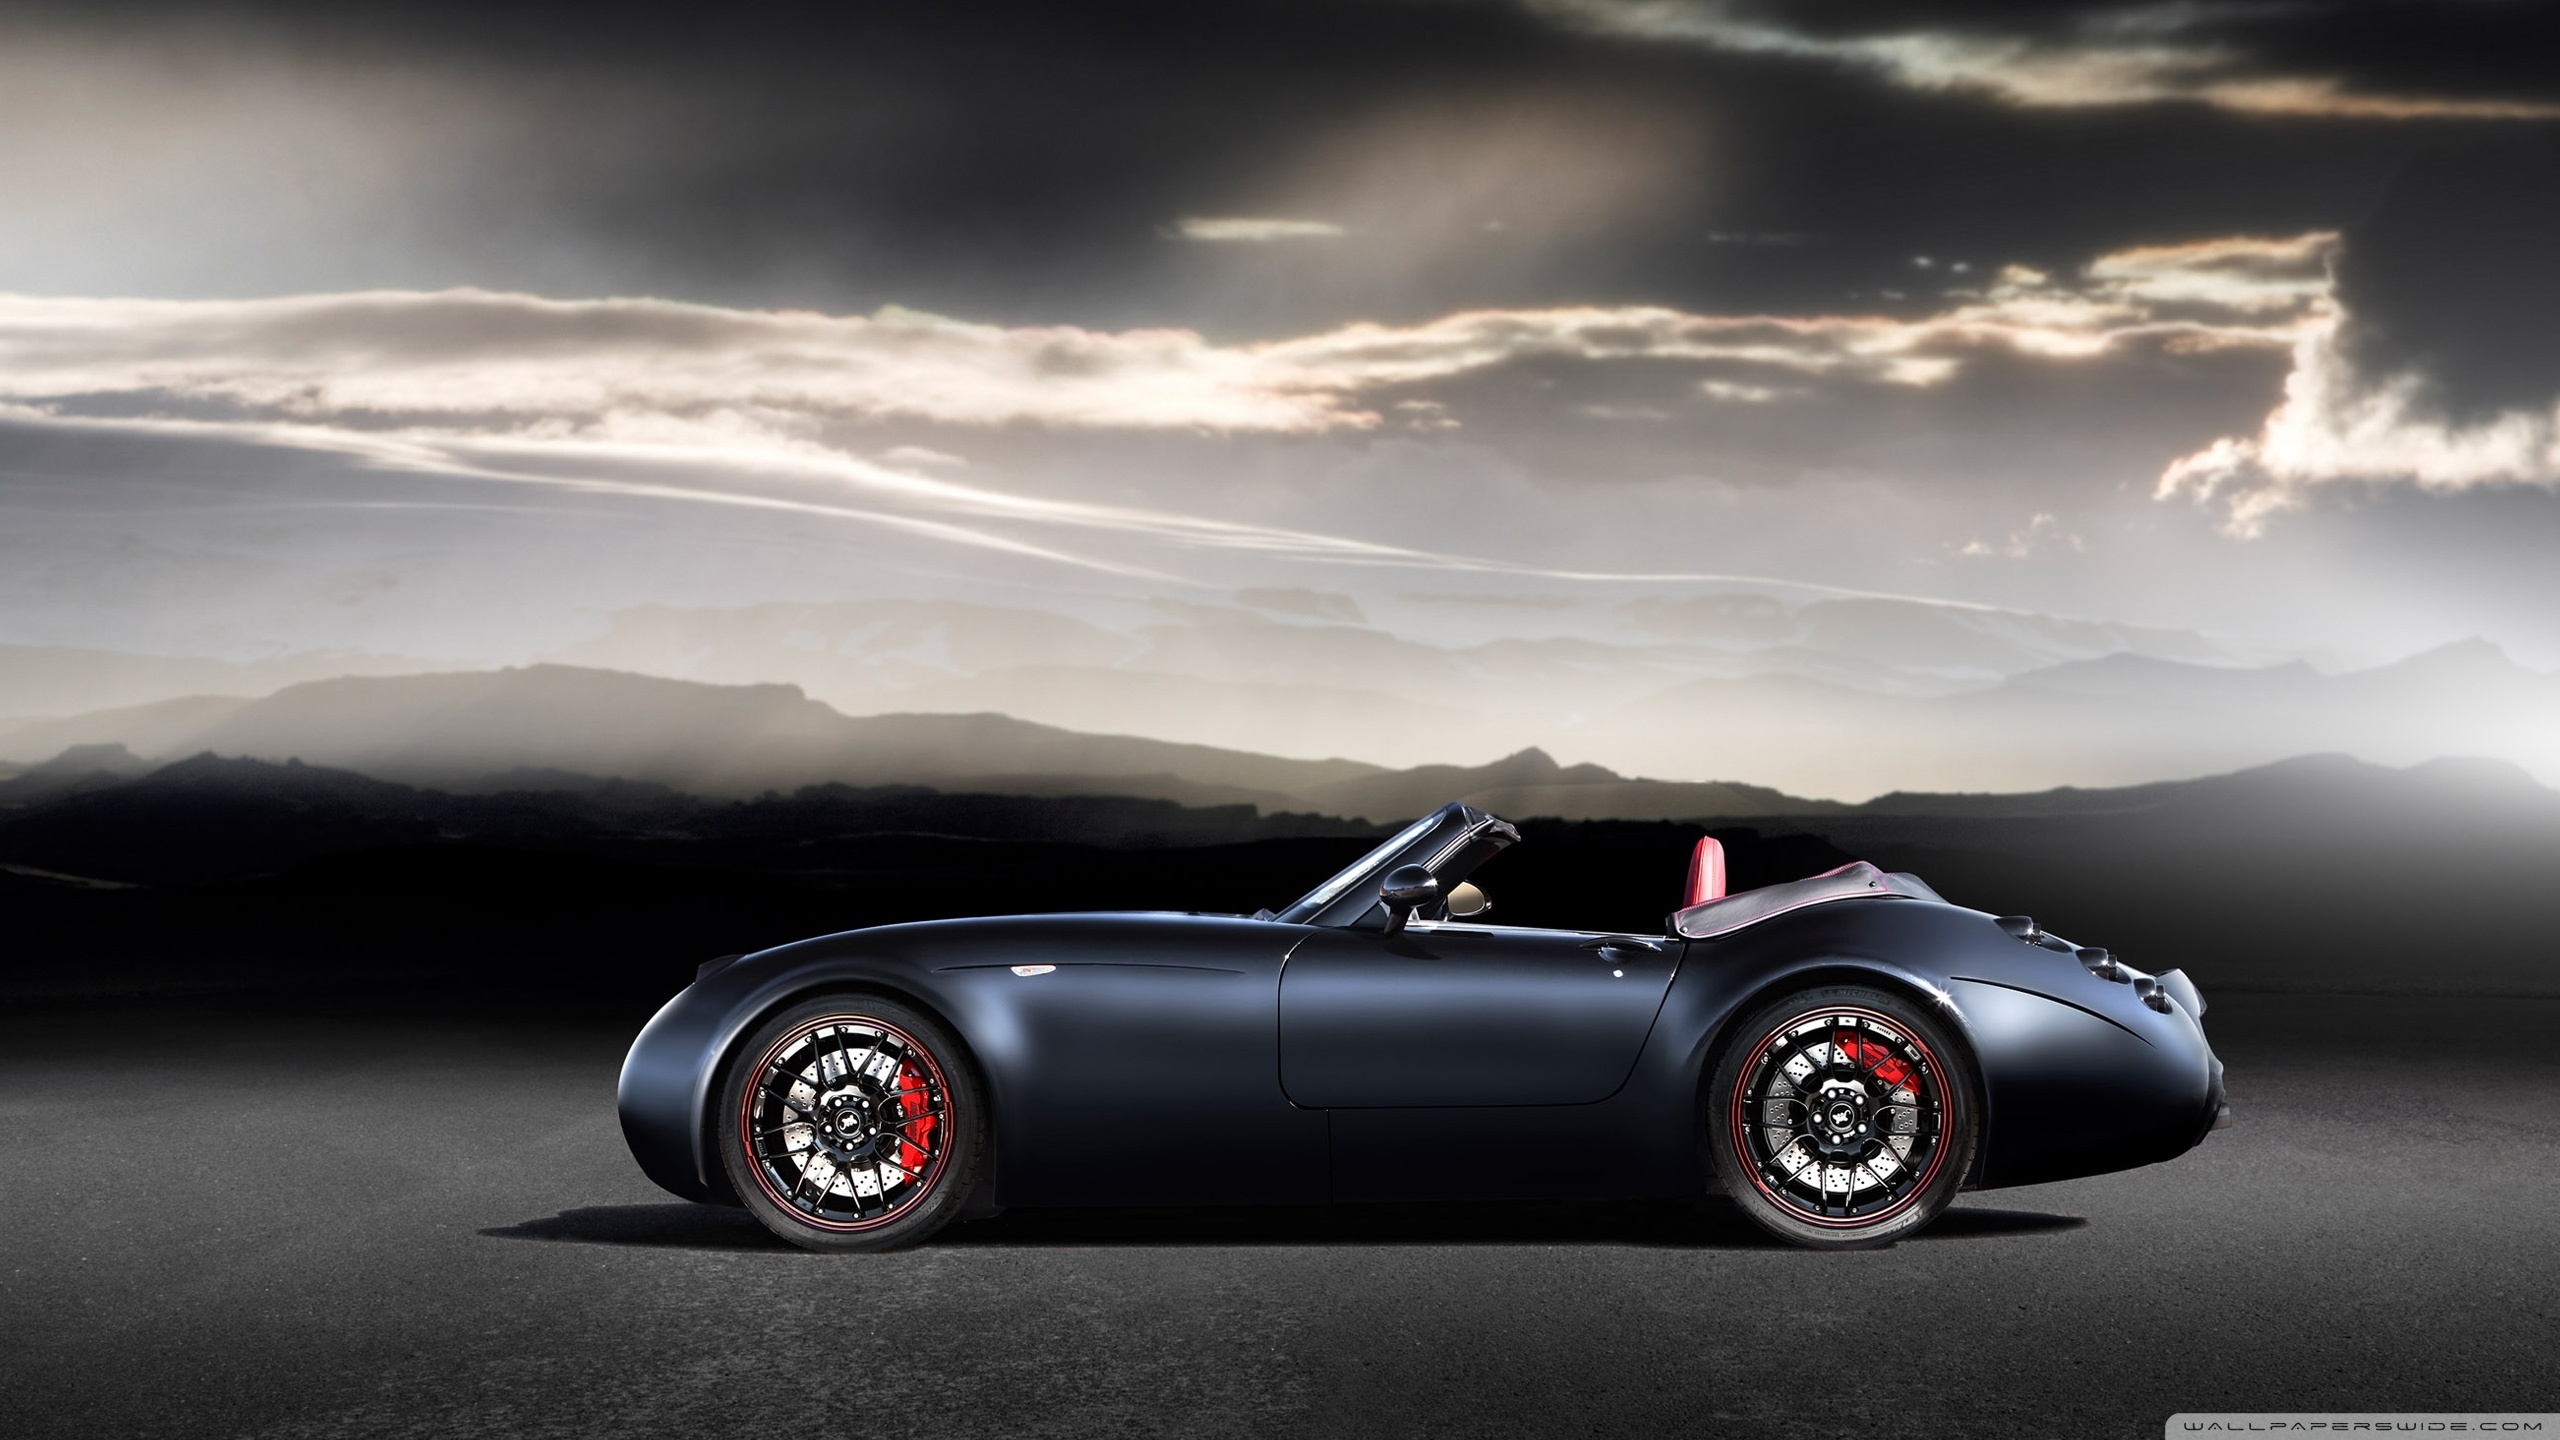 2560x1440 - Wiesmann GT MF4 Wallpapers 12